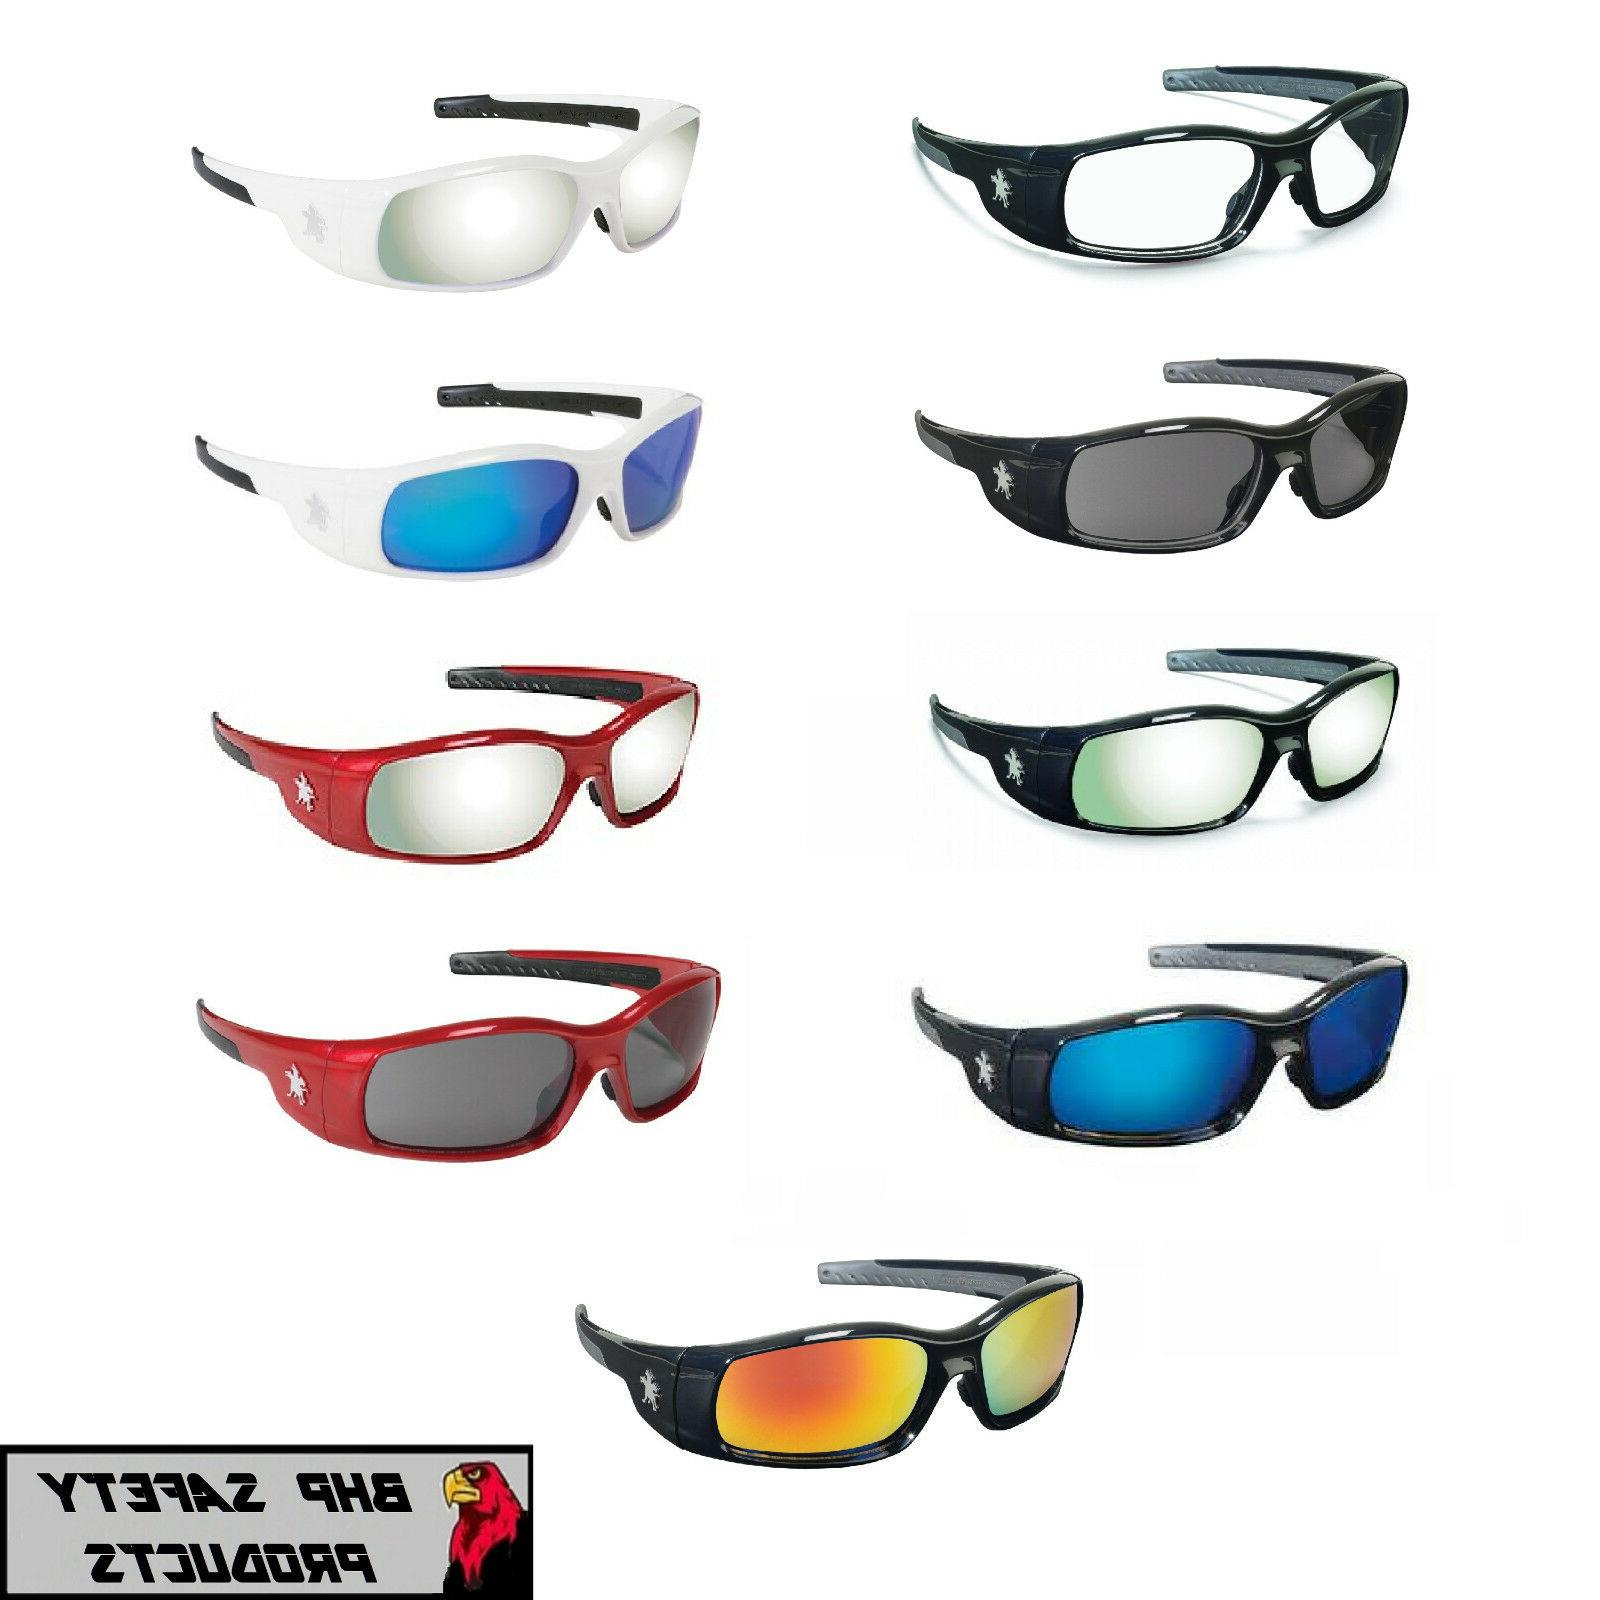 mcr crews swagger safety glasses sunglasses work